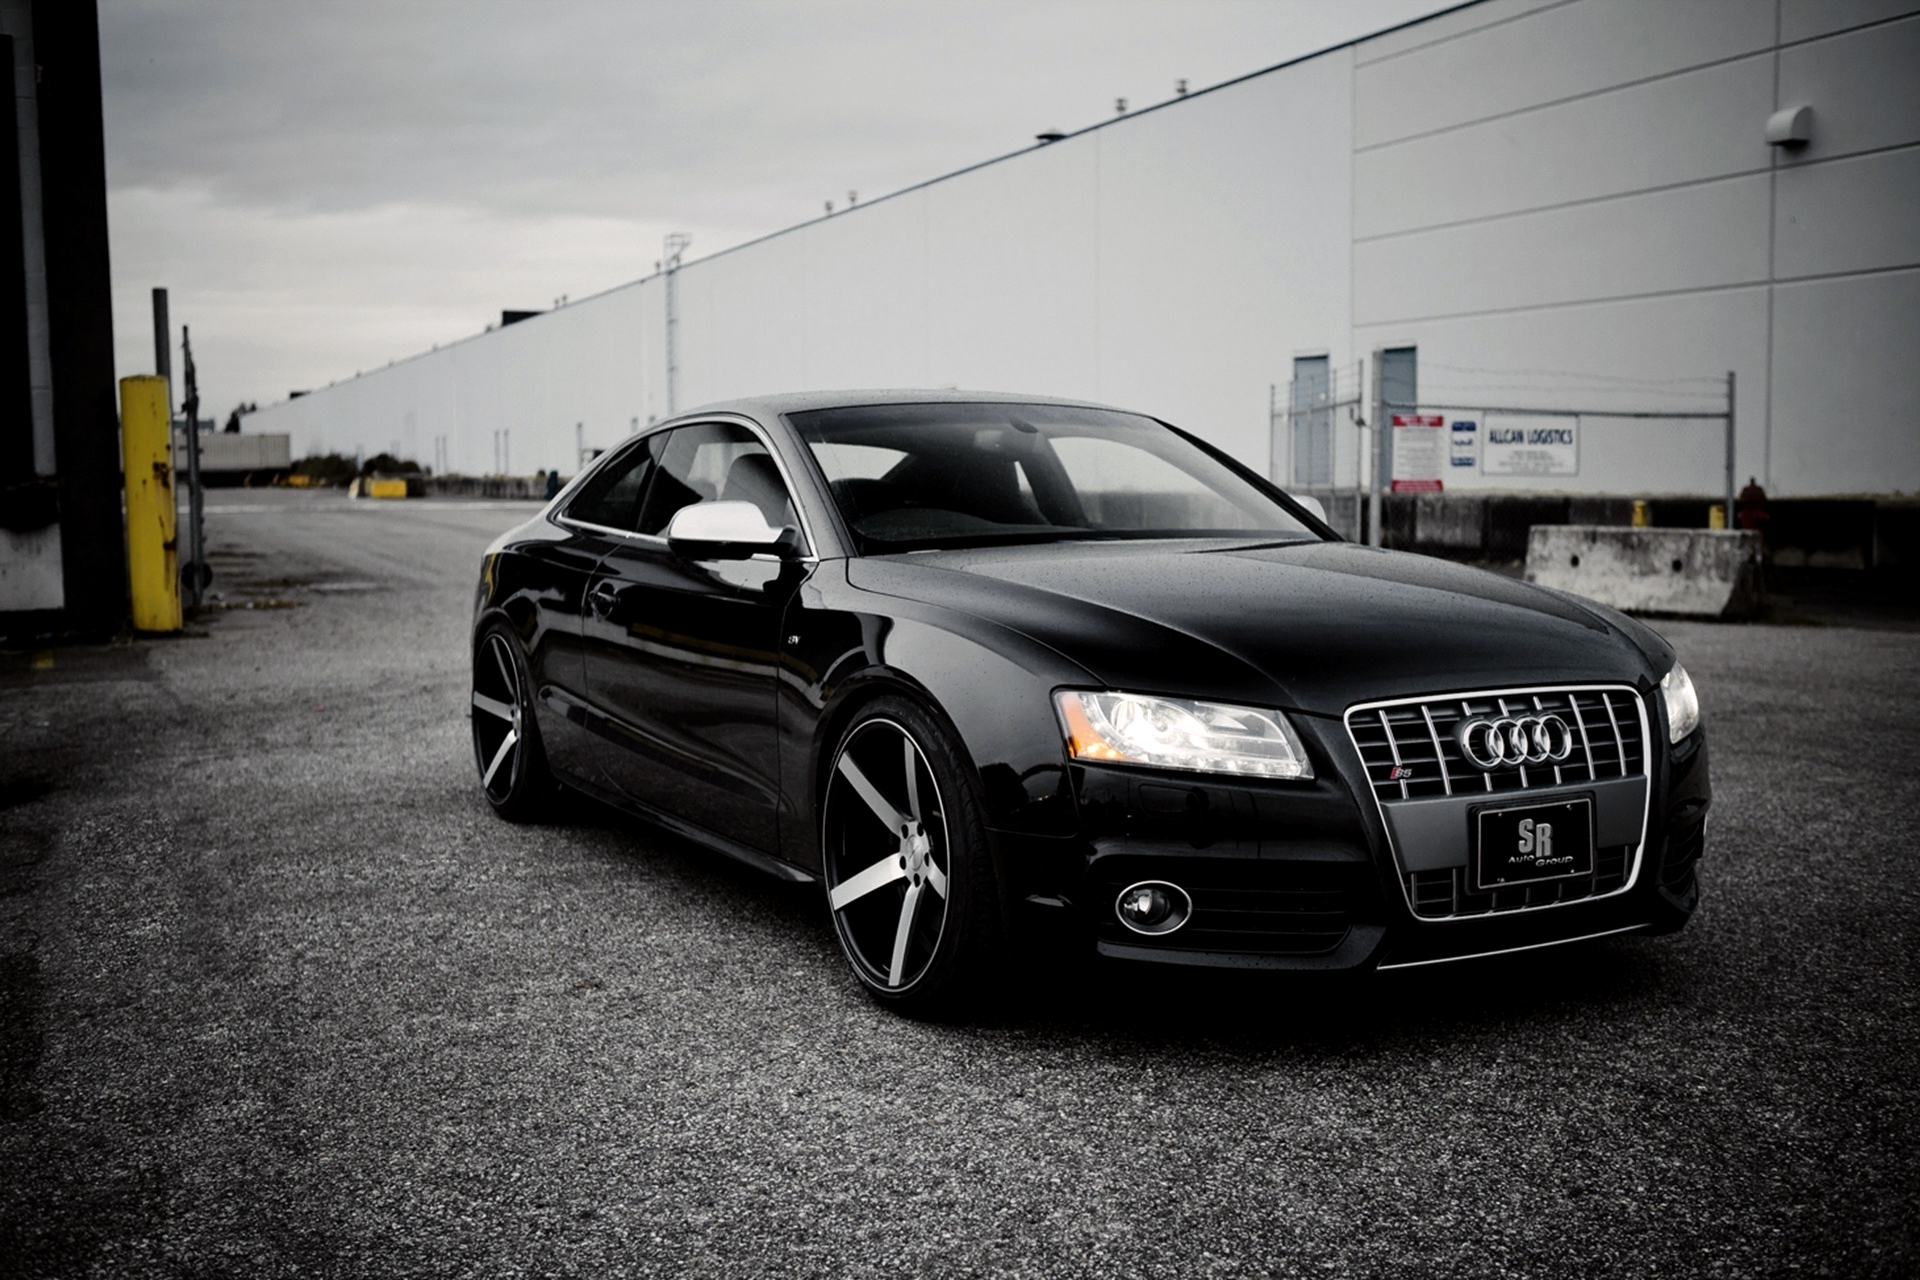 Audi S4 Full HD Wallpaper And Background Image